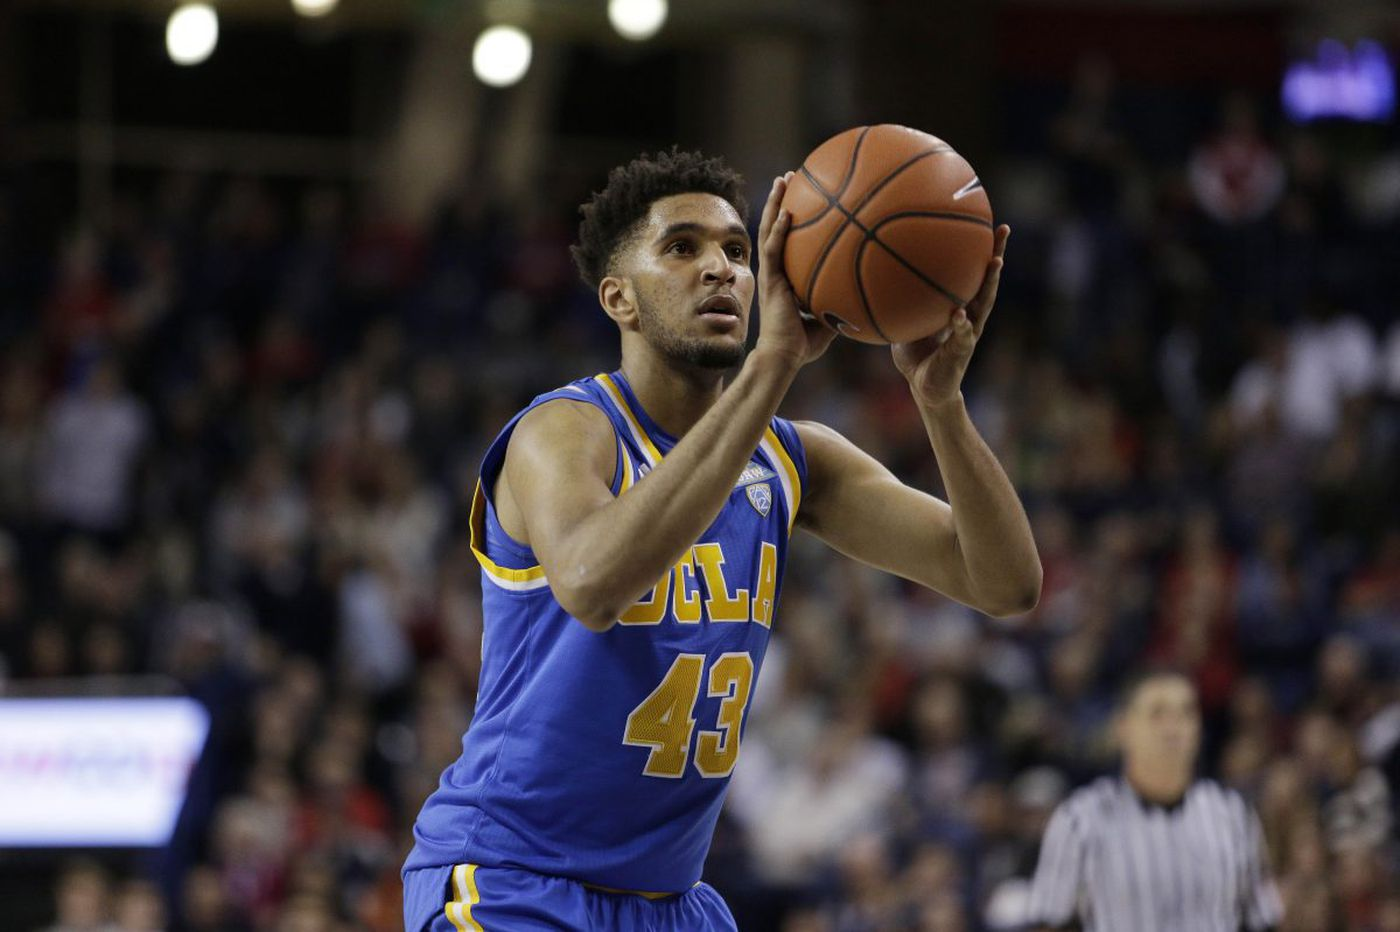 Jonah Bolden likely to join Sixers next season